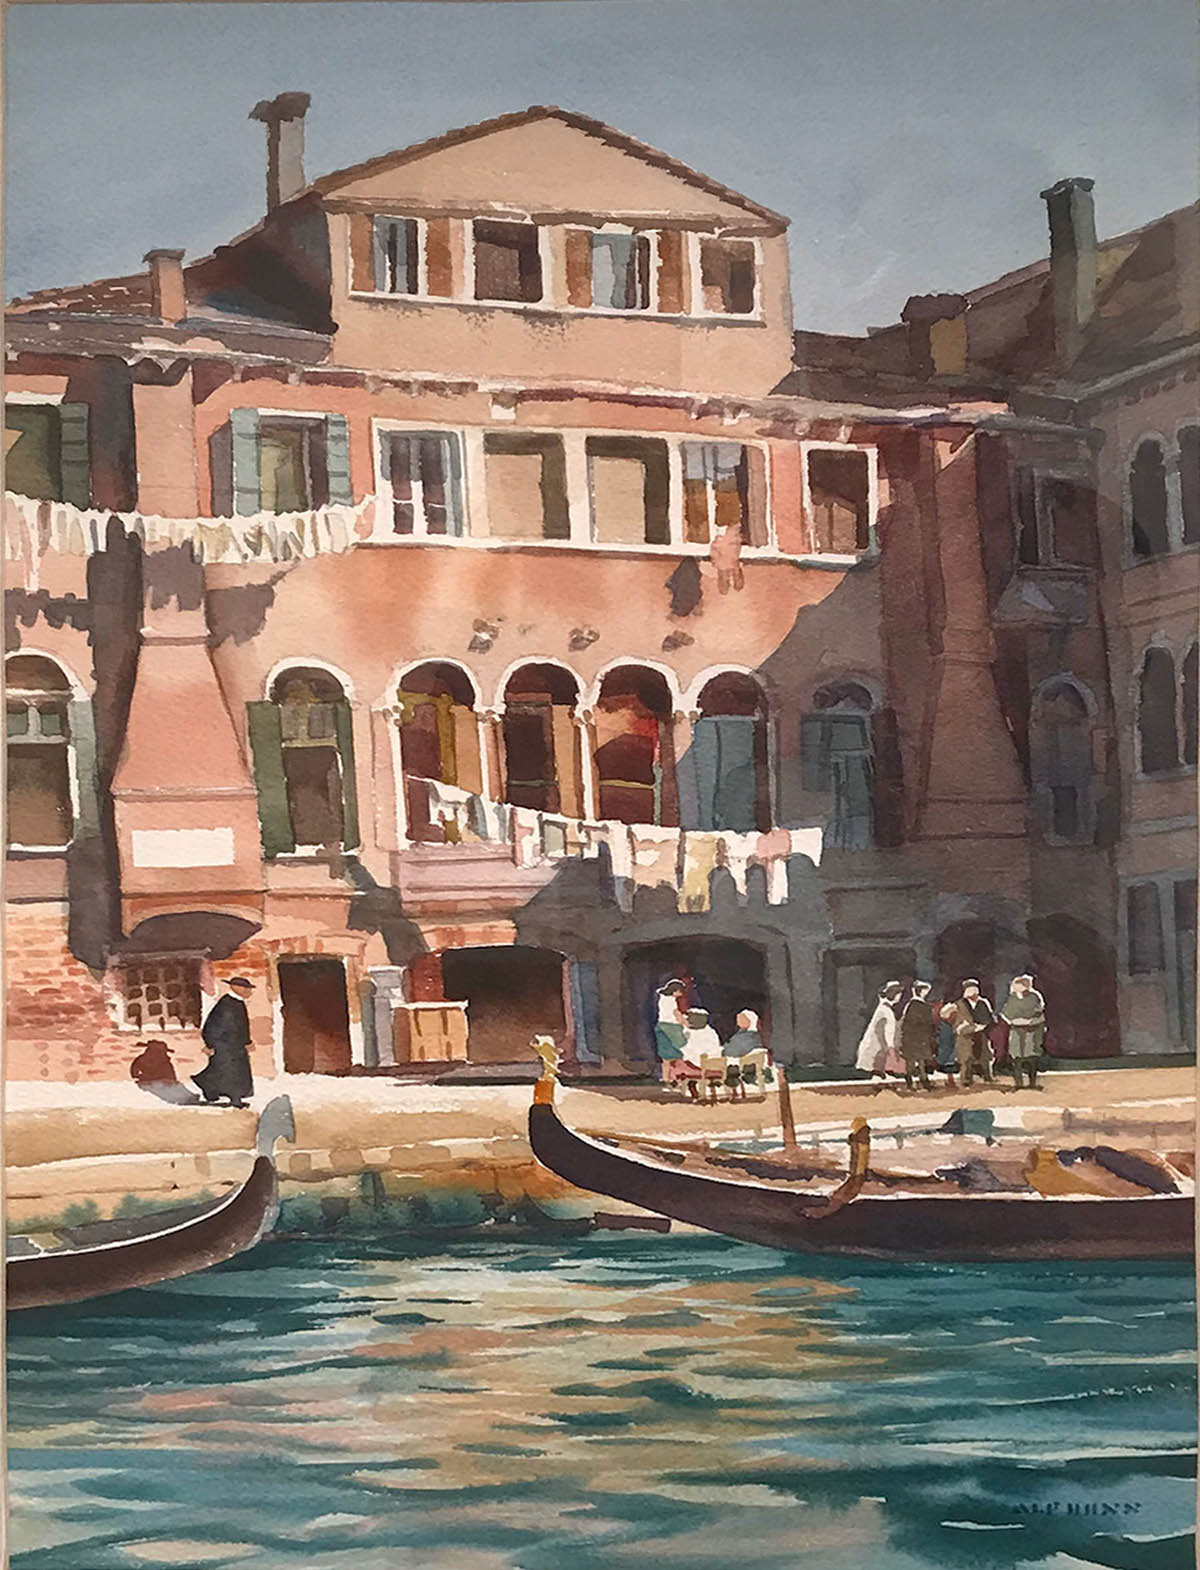 Watercolor of a building and waterfront in Venice, Italy.